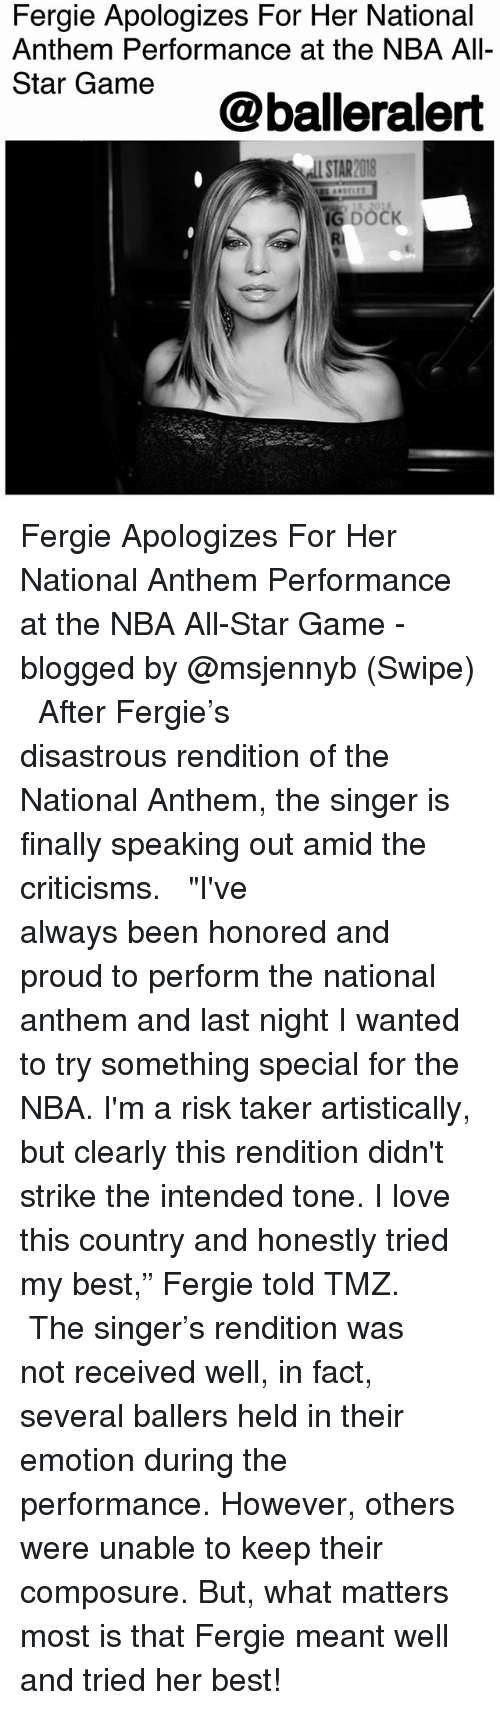 """All Star Game: Fergie Apologizes For Her National  Anthem Performance at the NBA All-  Star Game  @balleralert  STAR2018 Fergie Apologizes For Her National Anthem Performance at the NBA All-Star Game - blogged by @msjennyb (Swipe) ⠀⠀⠀⠀⠀⠀⠀ ⠀⠀⠀⠀⠀⠀⠀ After Fergie's disastrous rendition of the National Anthem, the singer is finally speaking out amid the criticisms. ⠀⠀⠀⠀⠀⠀⠀ ⠀⠀⠀⠀⠀⠀⠀ """"I've always been honored and proud to perform the national anthem and last night I wanted to try something special for the NBA. I'm a risk taker artistically, but clearly this rendition didn't strike the intended tone. I love this country and honestly tried my best,"""" Fergie told TMZ. ⠀⠀⠀⠀⠀⠀⠀ ⠀⠀⠀⠀⠀⠀⠀ The singer's rendition was not received well, in fact, several ballers held in their emotion during the performance. However, others were unable to keep their composure. But, what matters most is that Fergie meant well and tried her best!"""